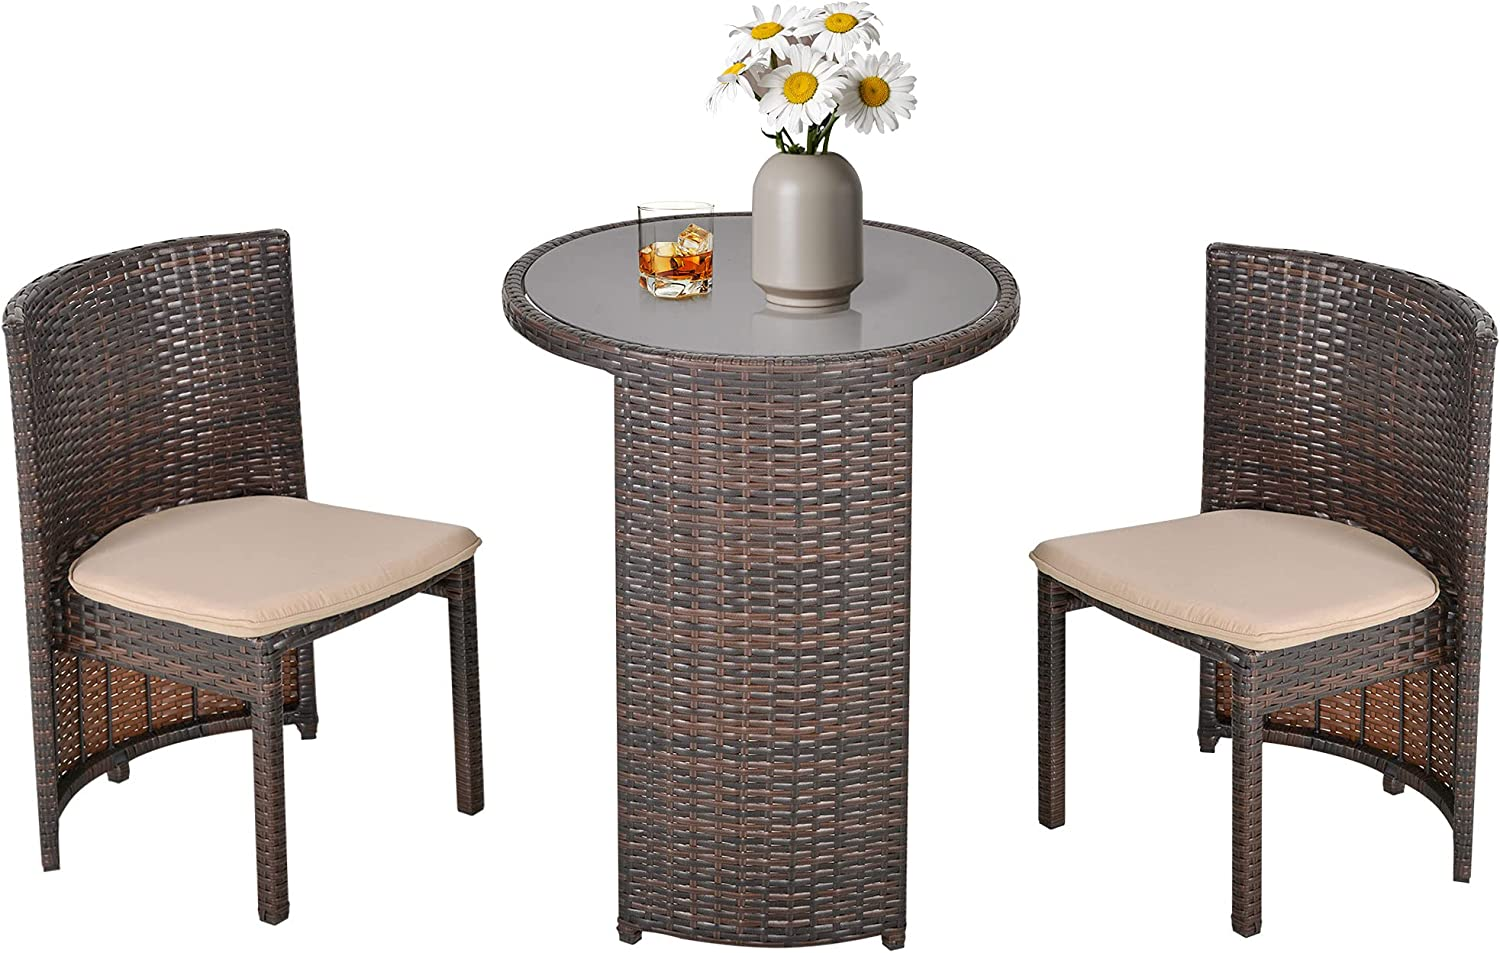 Outsunny 3 PCS Outdoor Rattan Wicker Bistro Set with Storage Shelf, Glass Top Table, Soft Cushioned Chairs and Space Saving Design, Patio Conversation Set for Garden Backyard Porch, Brown